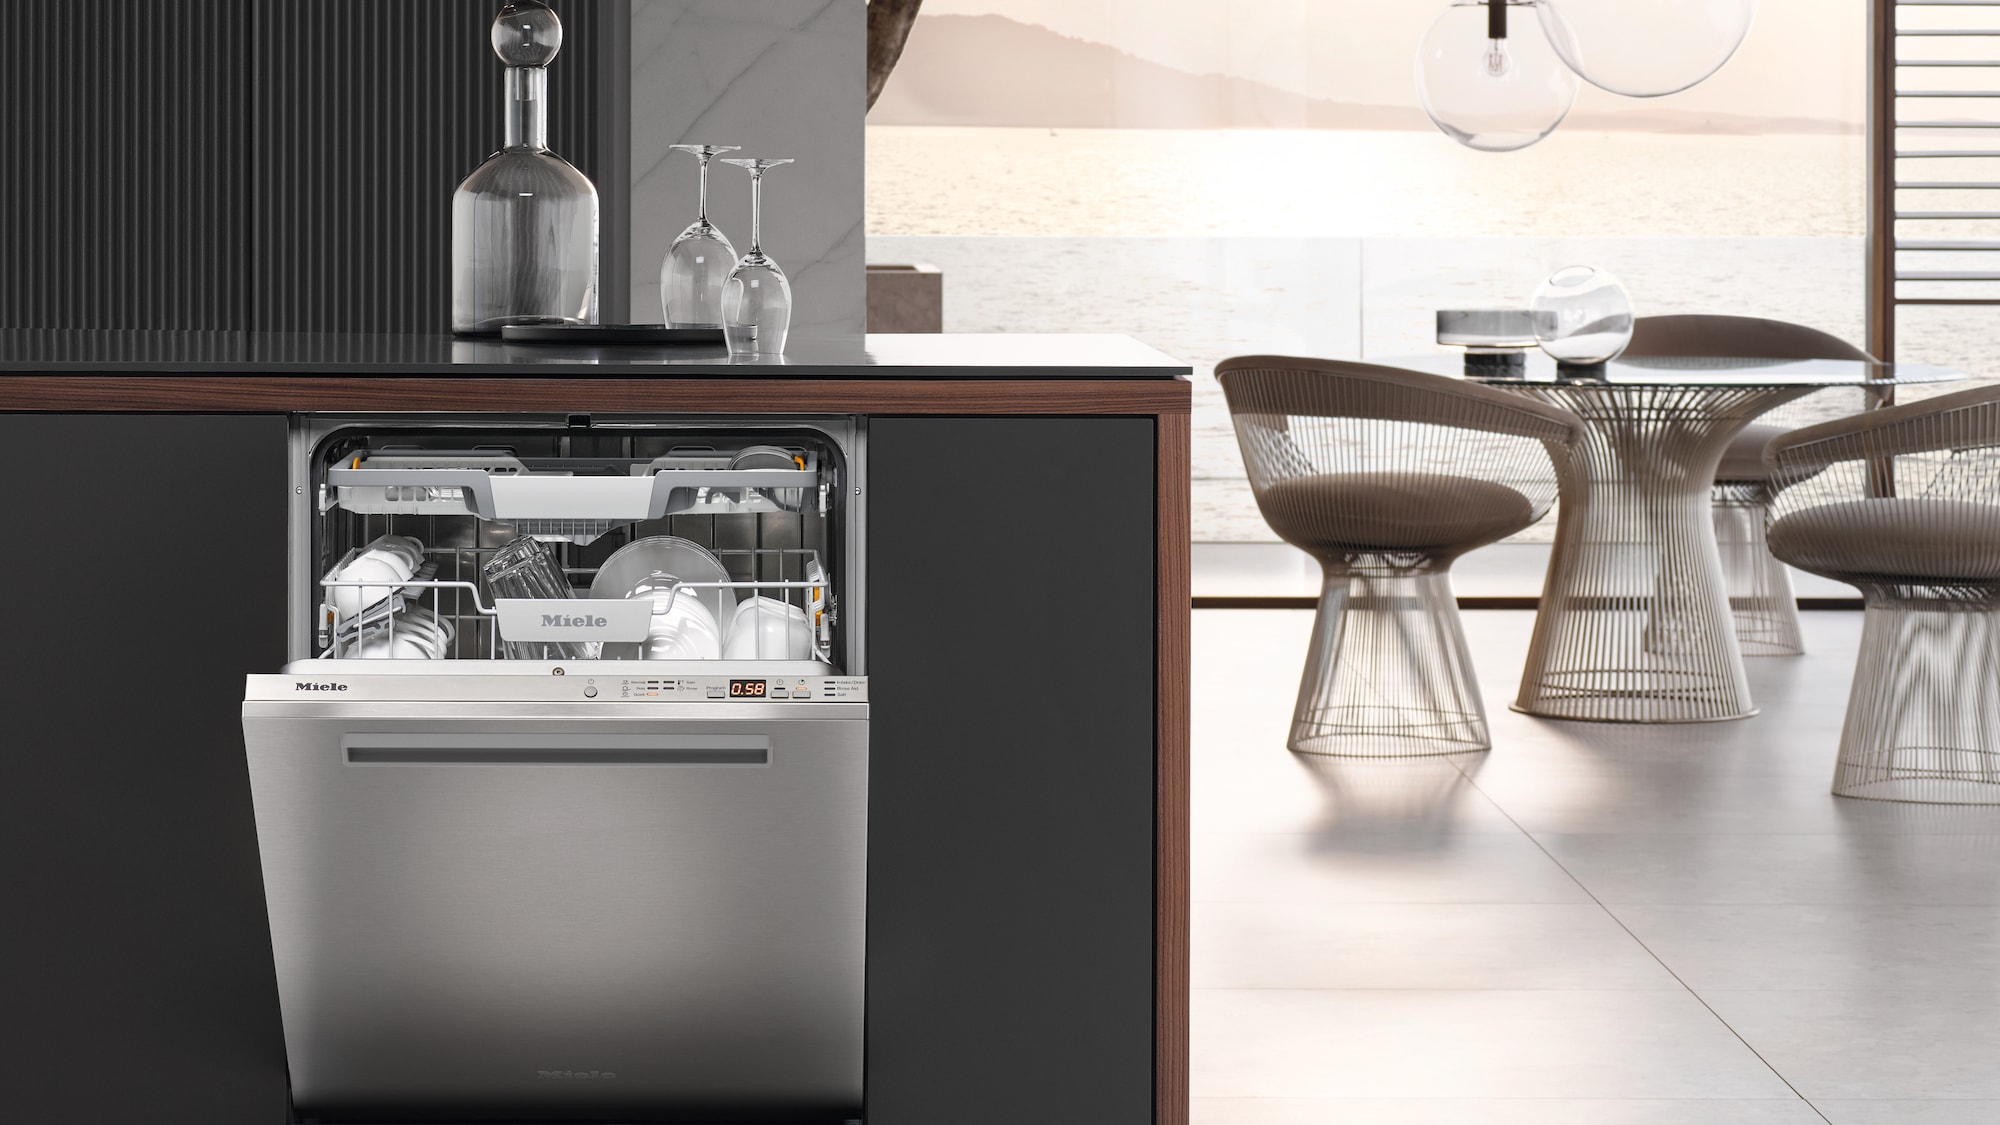 High End Dishwashers Featuring Pocket Handle